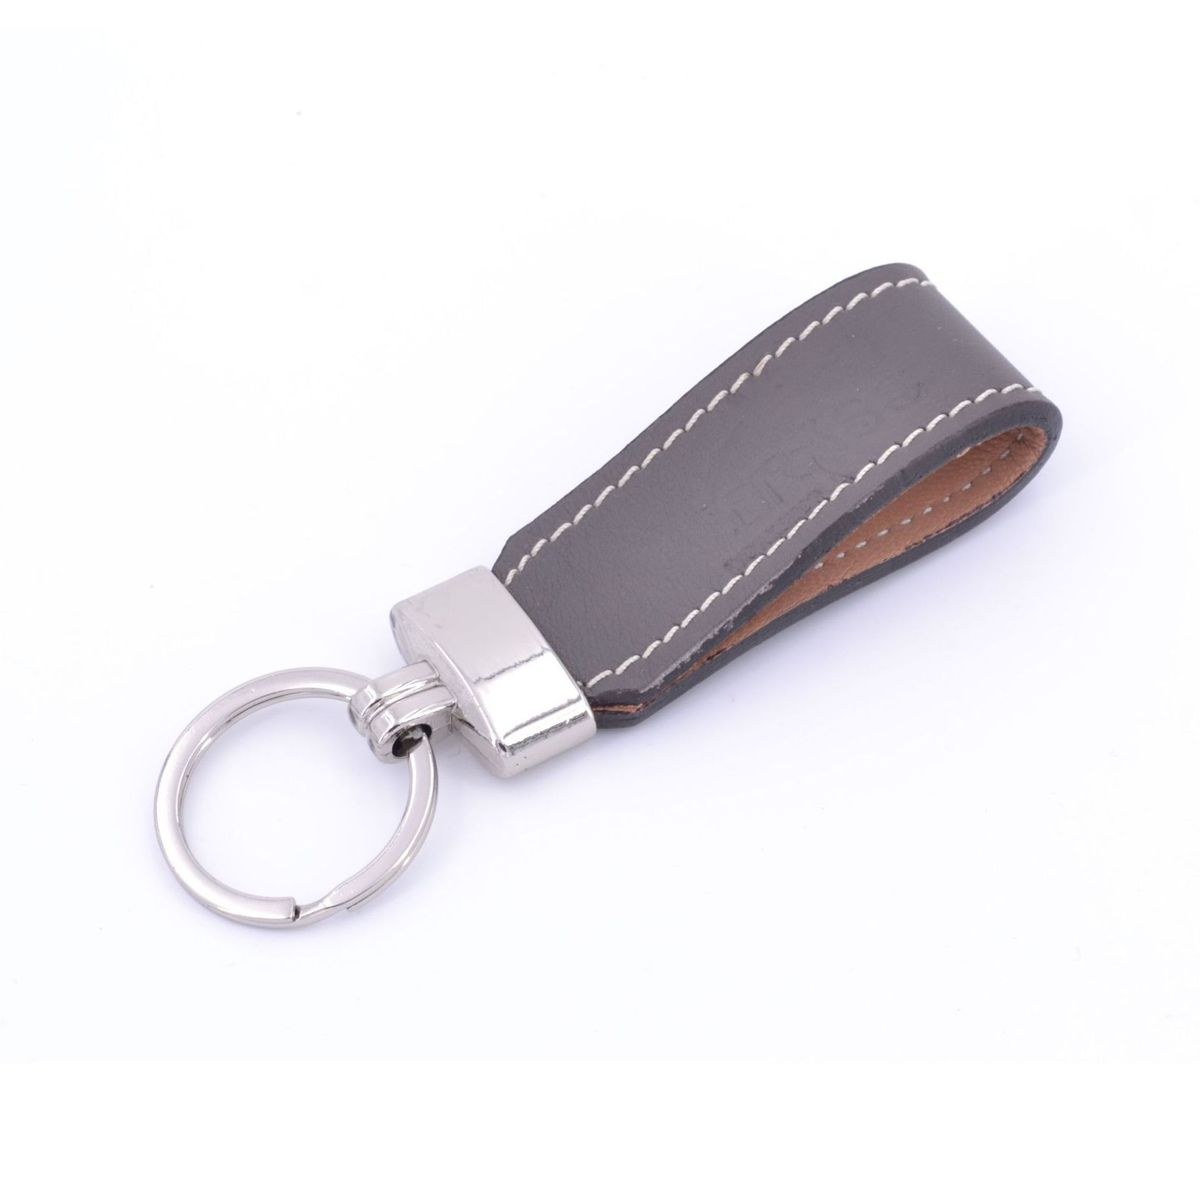 Key ring in leather strap Grey BRASS Workshop